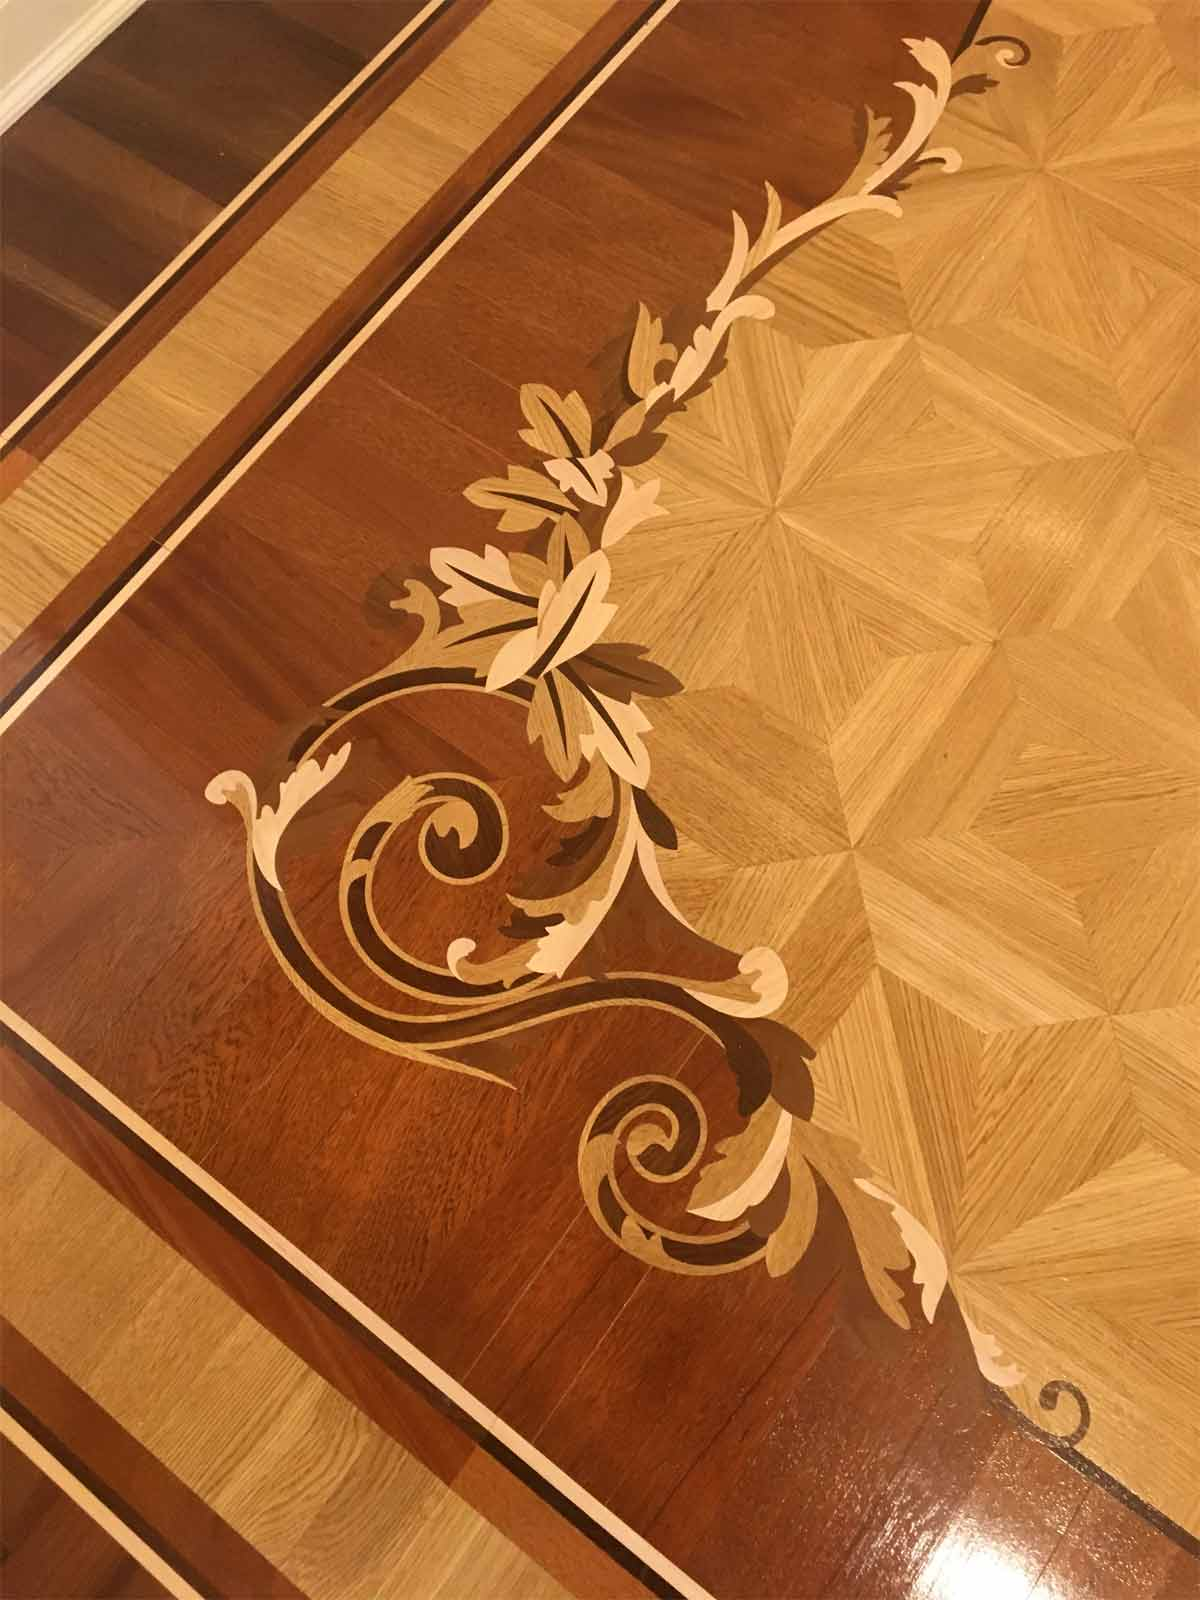 573: Inlay border corner with M2 parquet.